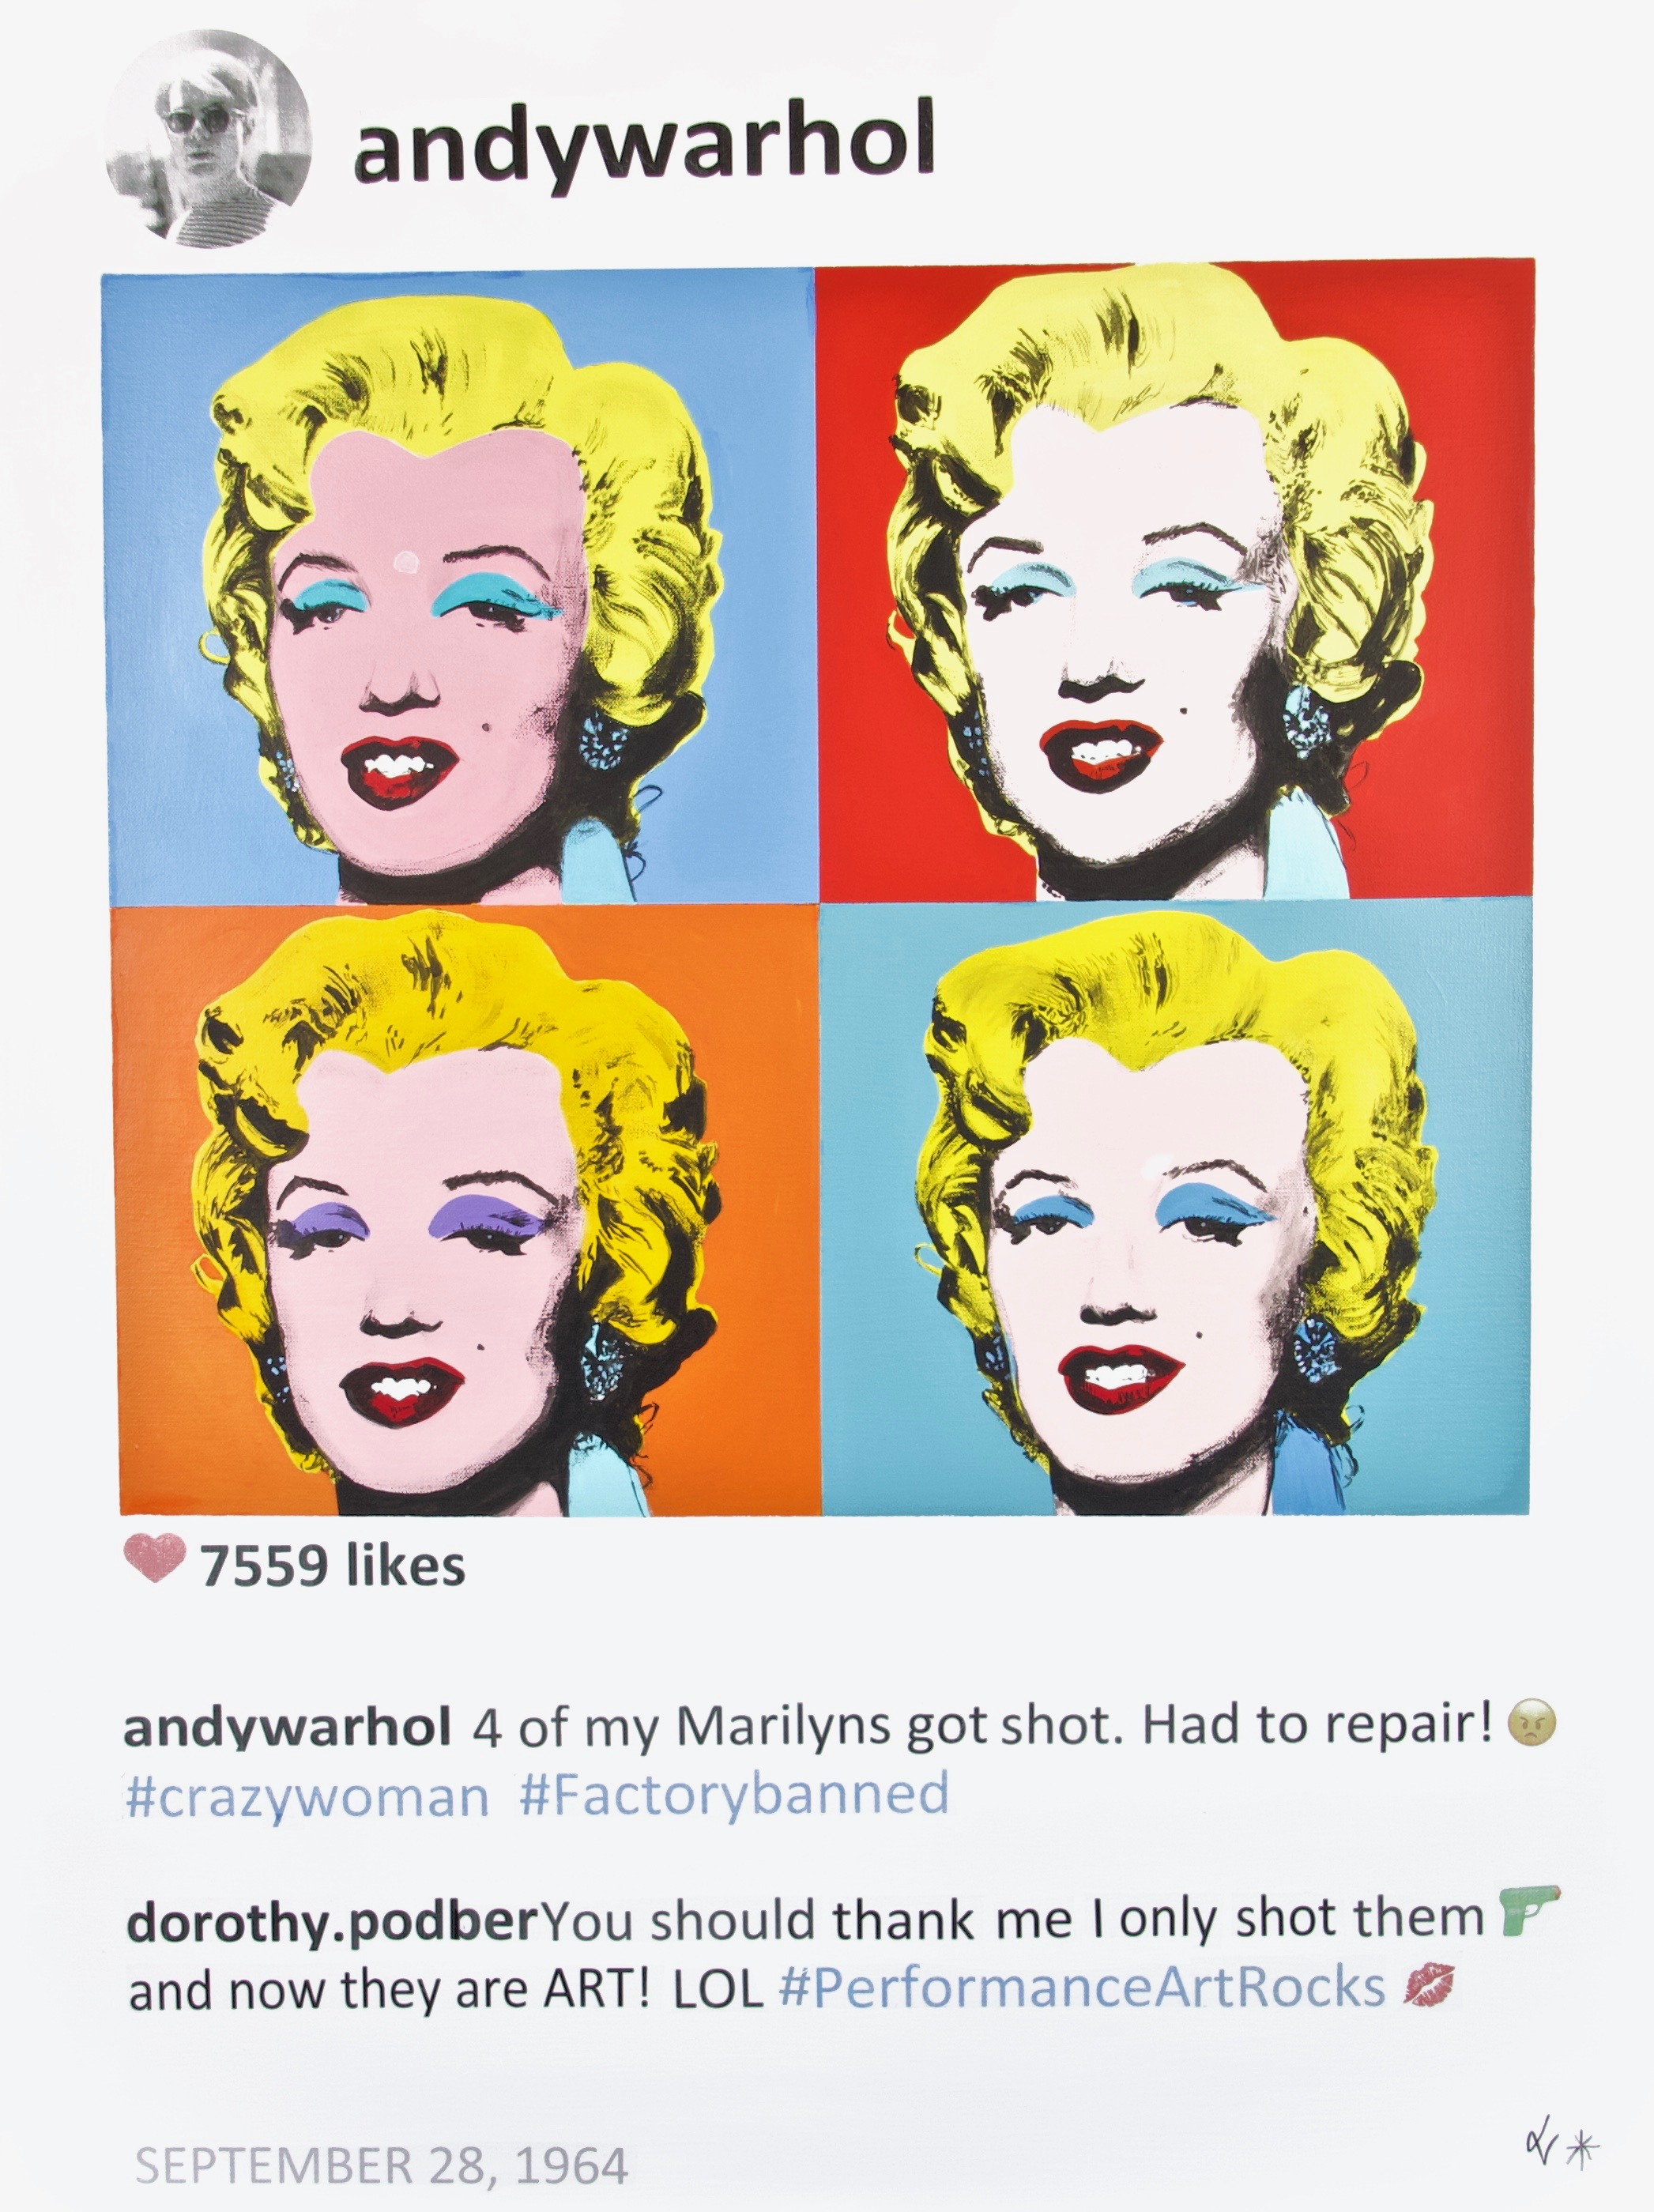 laurence de valmy artist instagram roy lichtenstein keith haring robert indiana ellsworth kelly andy warhol marylin acrylic instagram contemporary art nyc honfleur